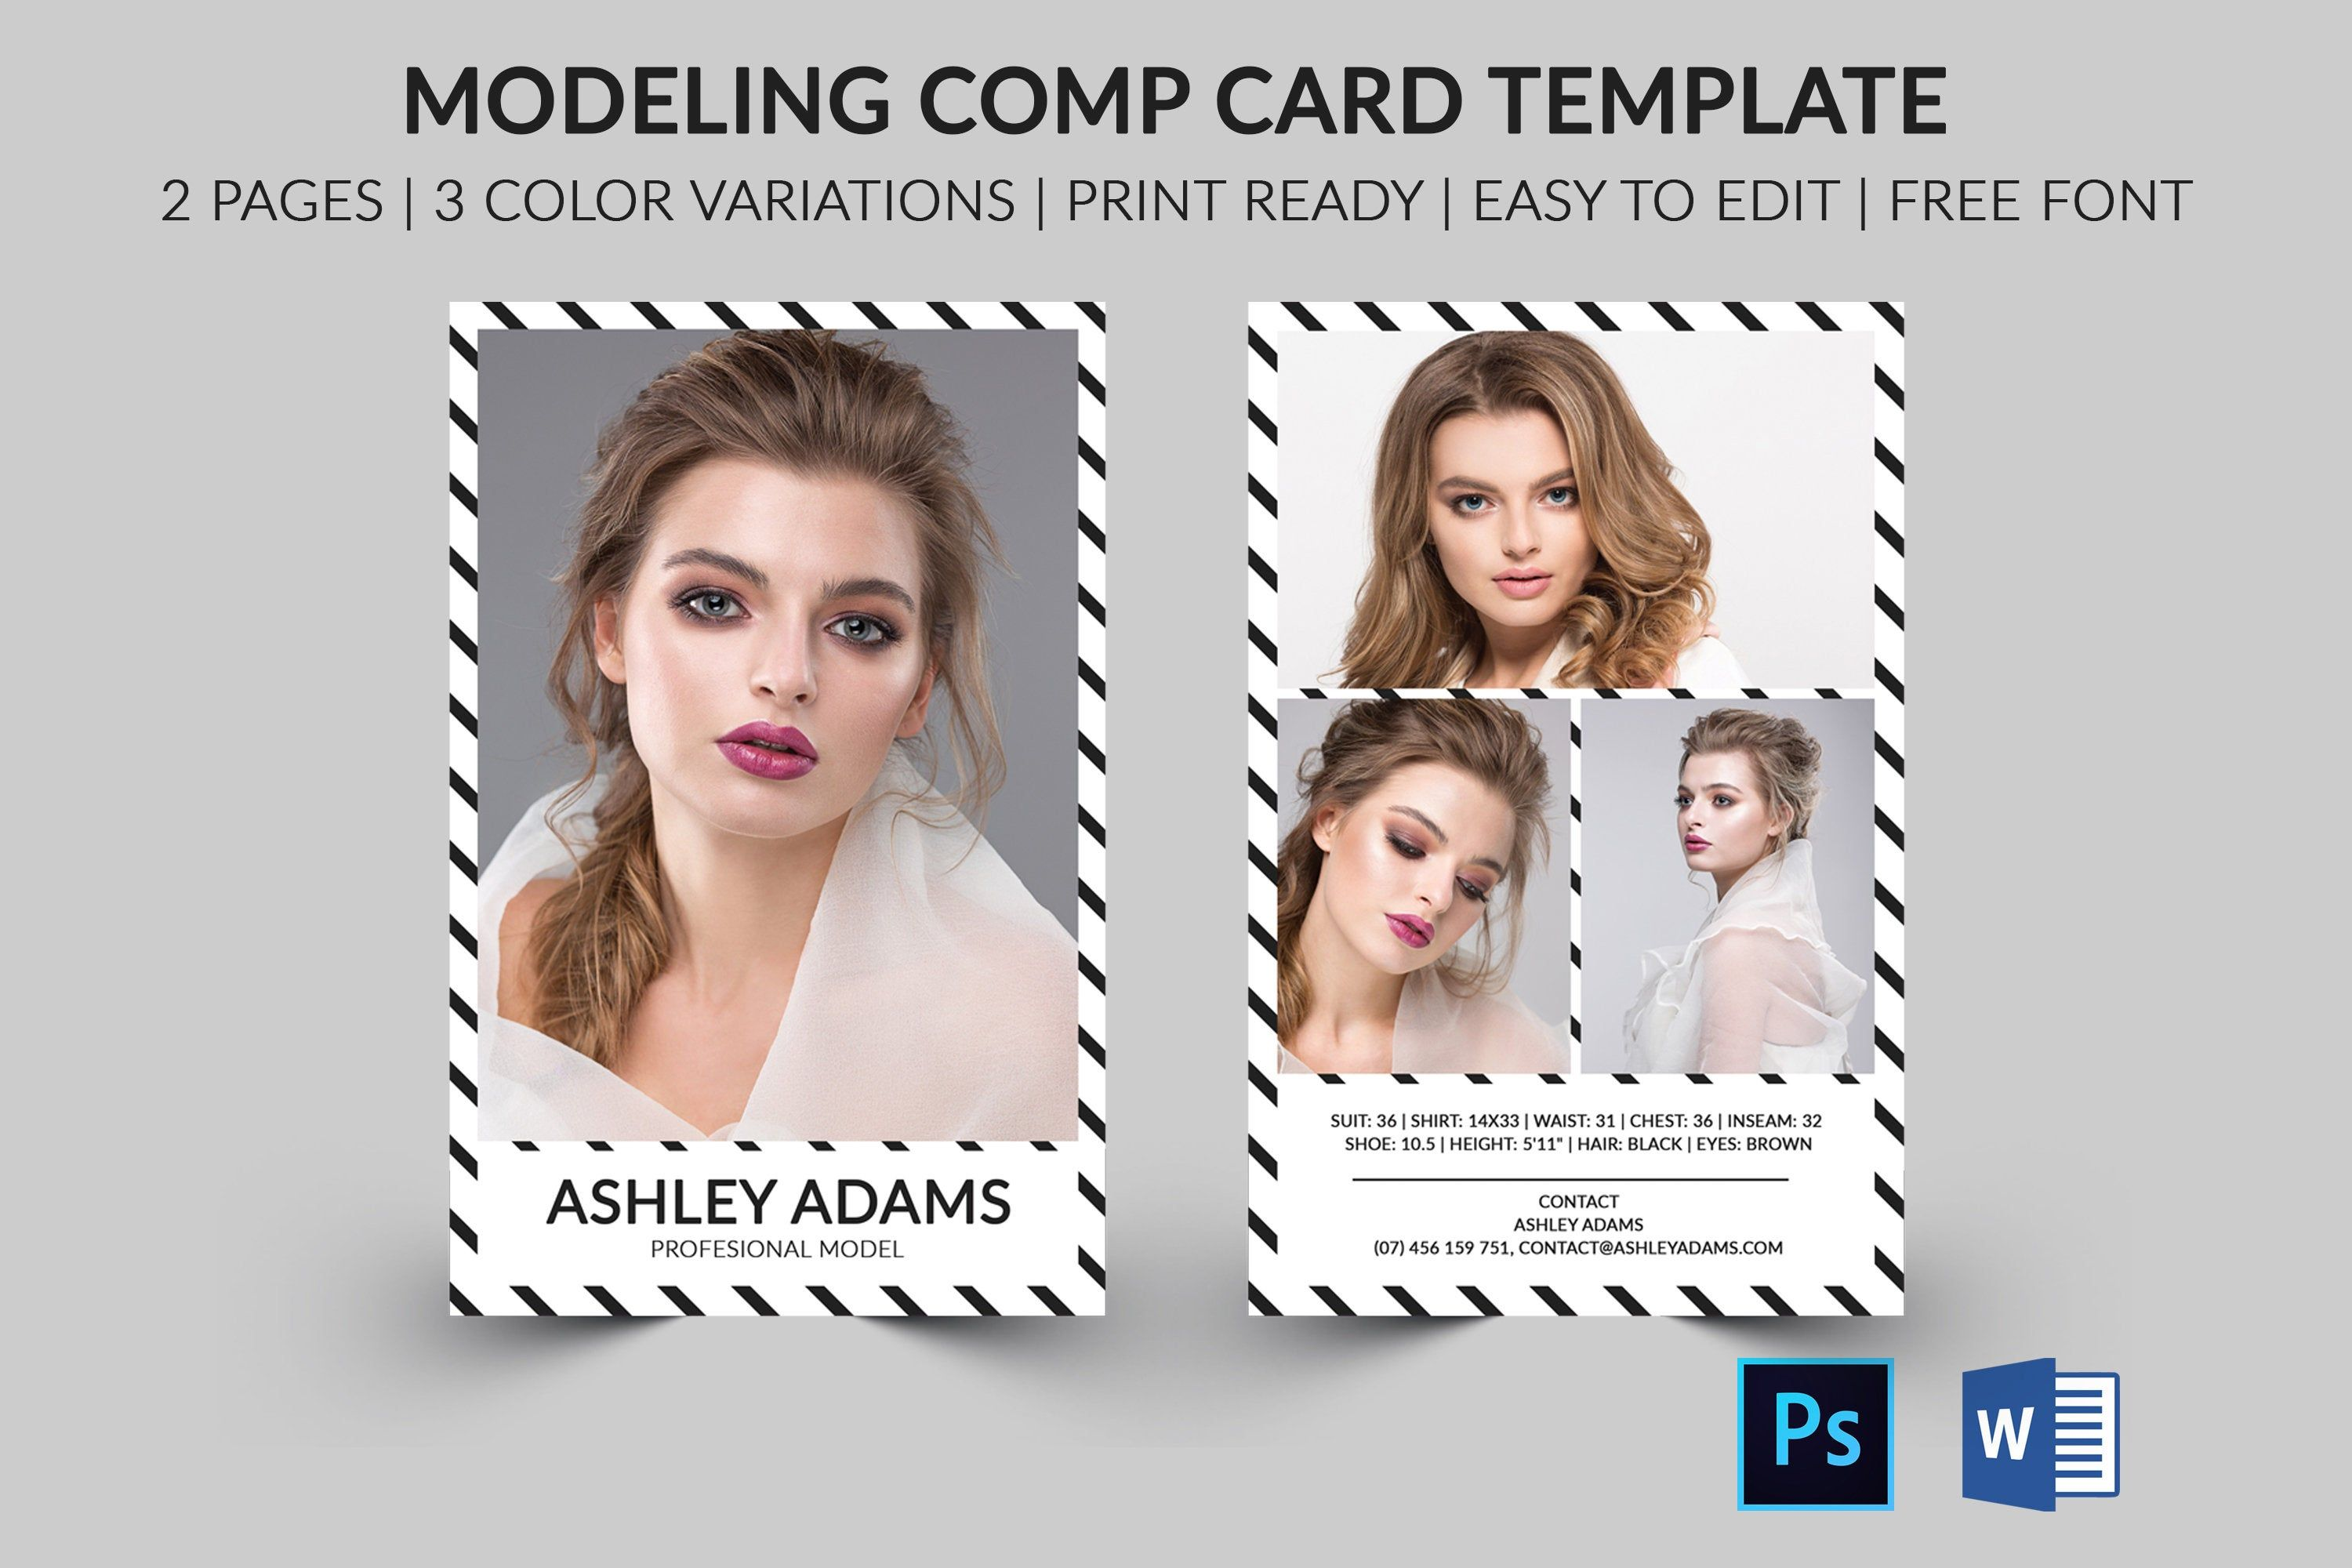 Modeling Comp Card Model Agency Zed Card Photoshop Elements Ms Word Template Modeling Card Instant Dow Model Comp Card Card Model Card Templates Free